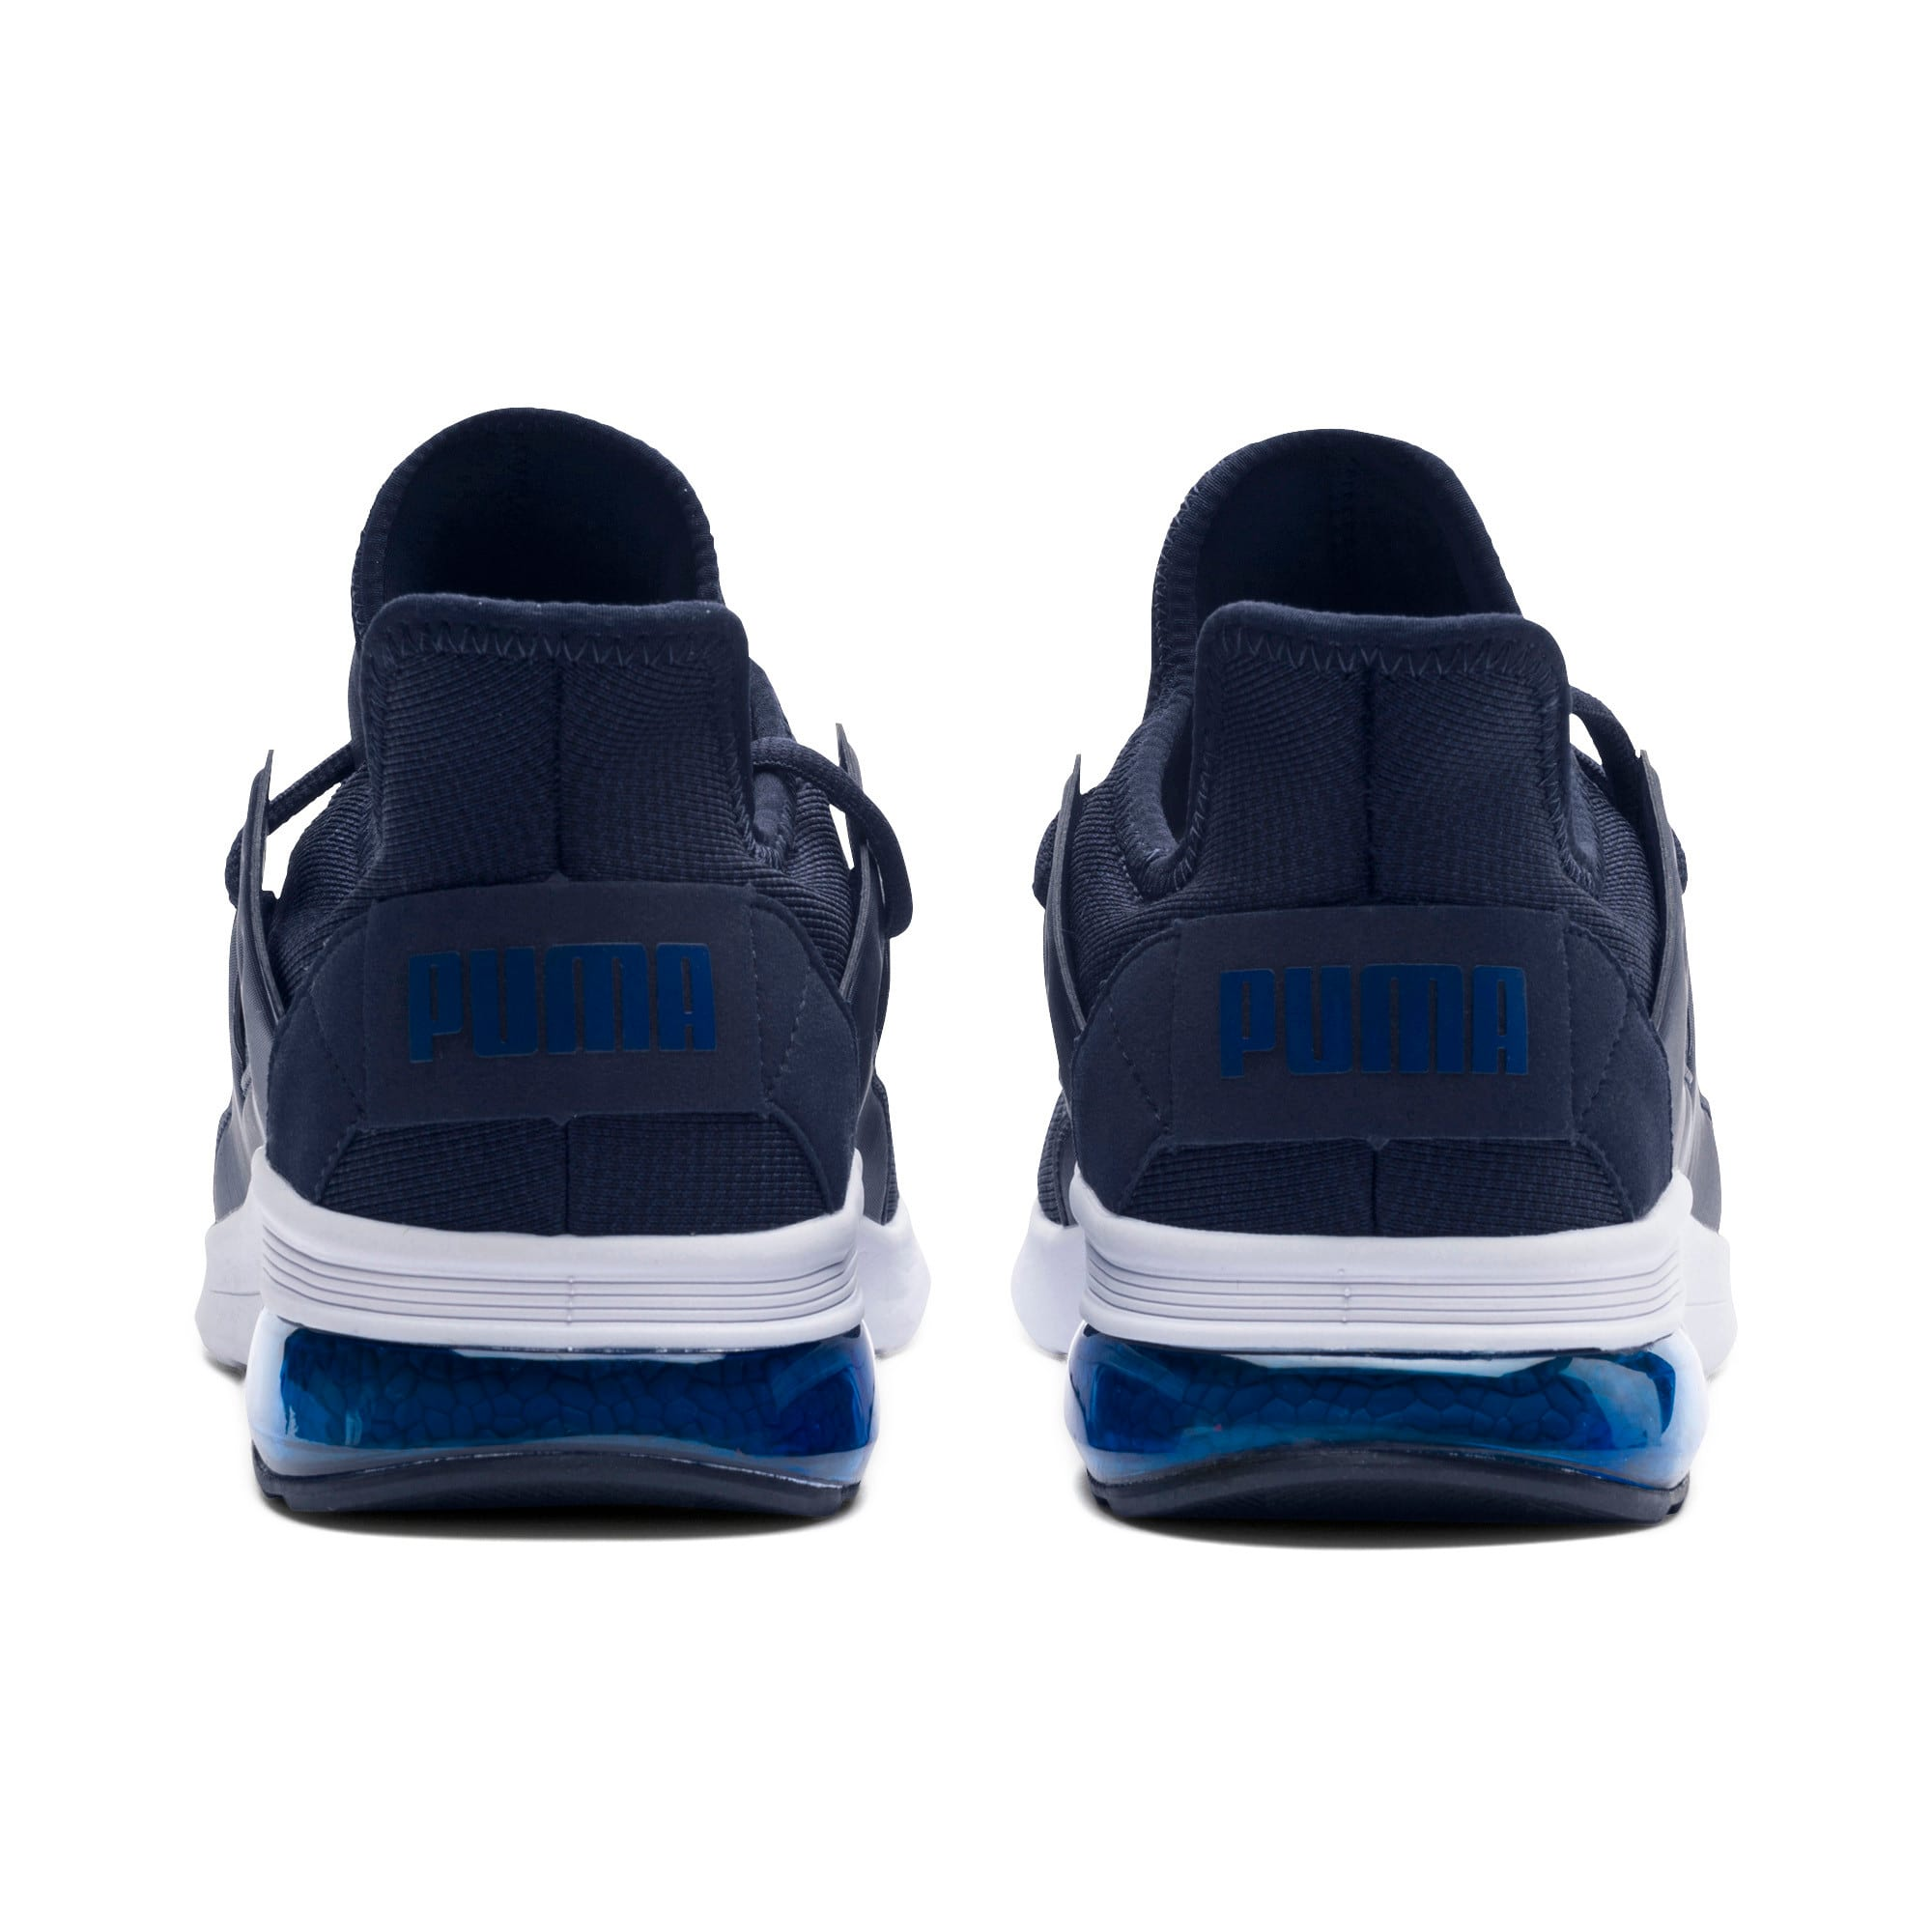 Thumbnail 3 of Electron Street Knit Trainers, Peacoat-Sodalite Blue, medium-IND